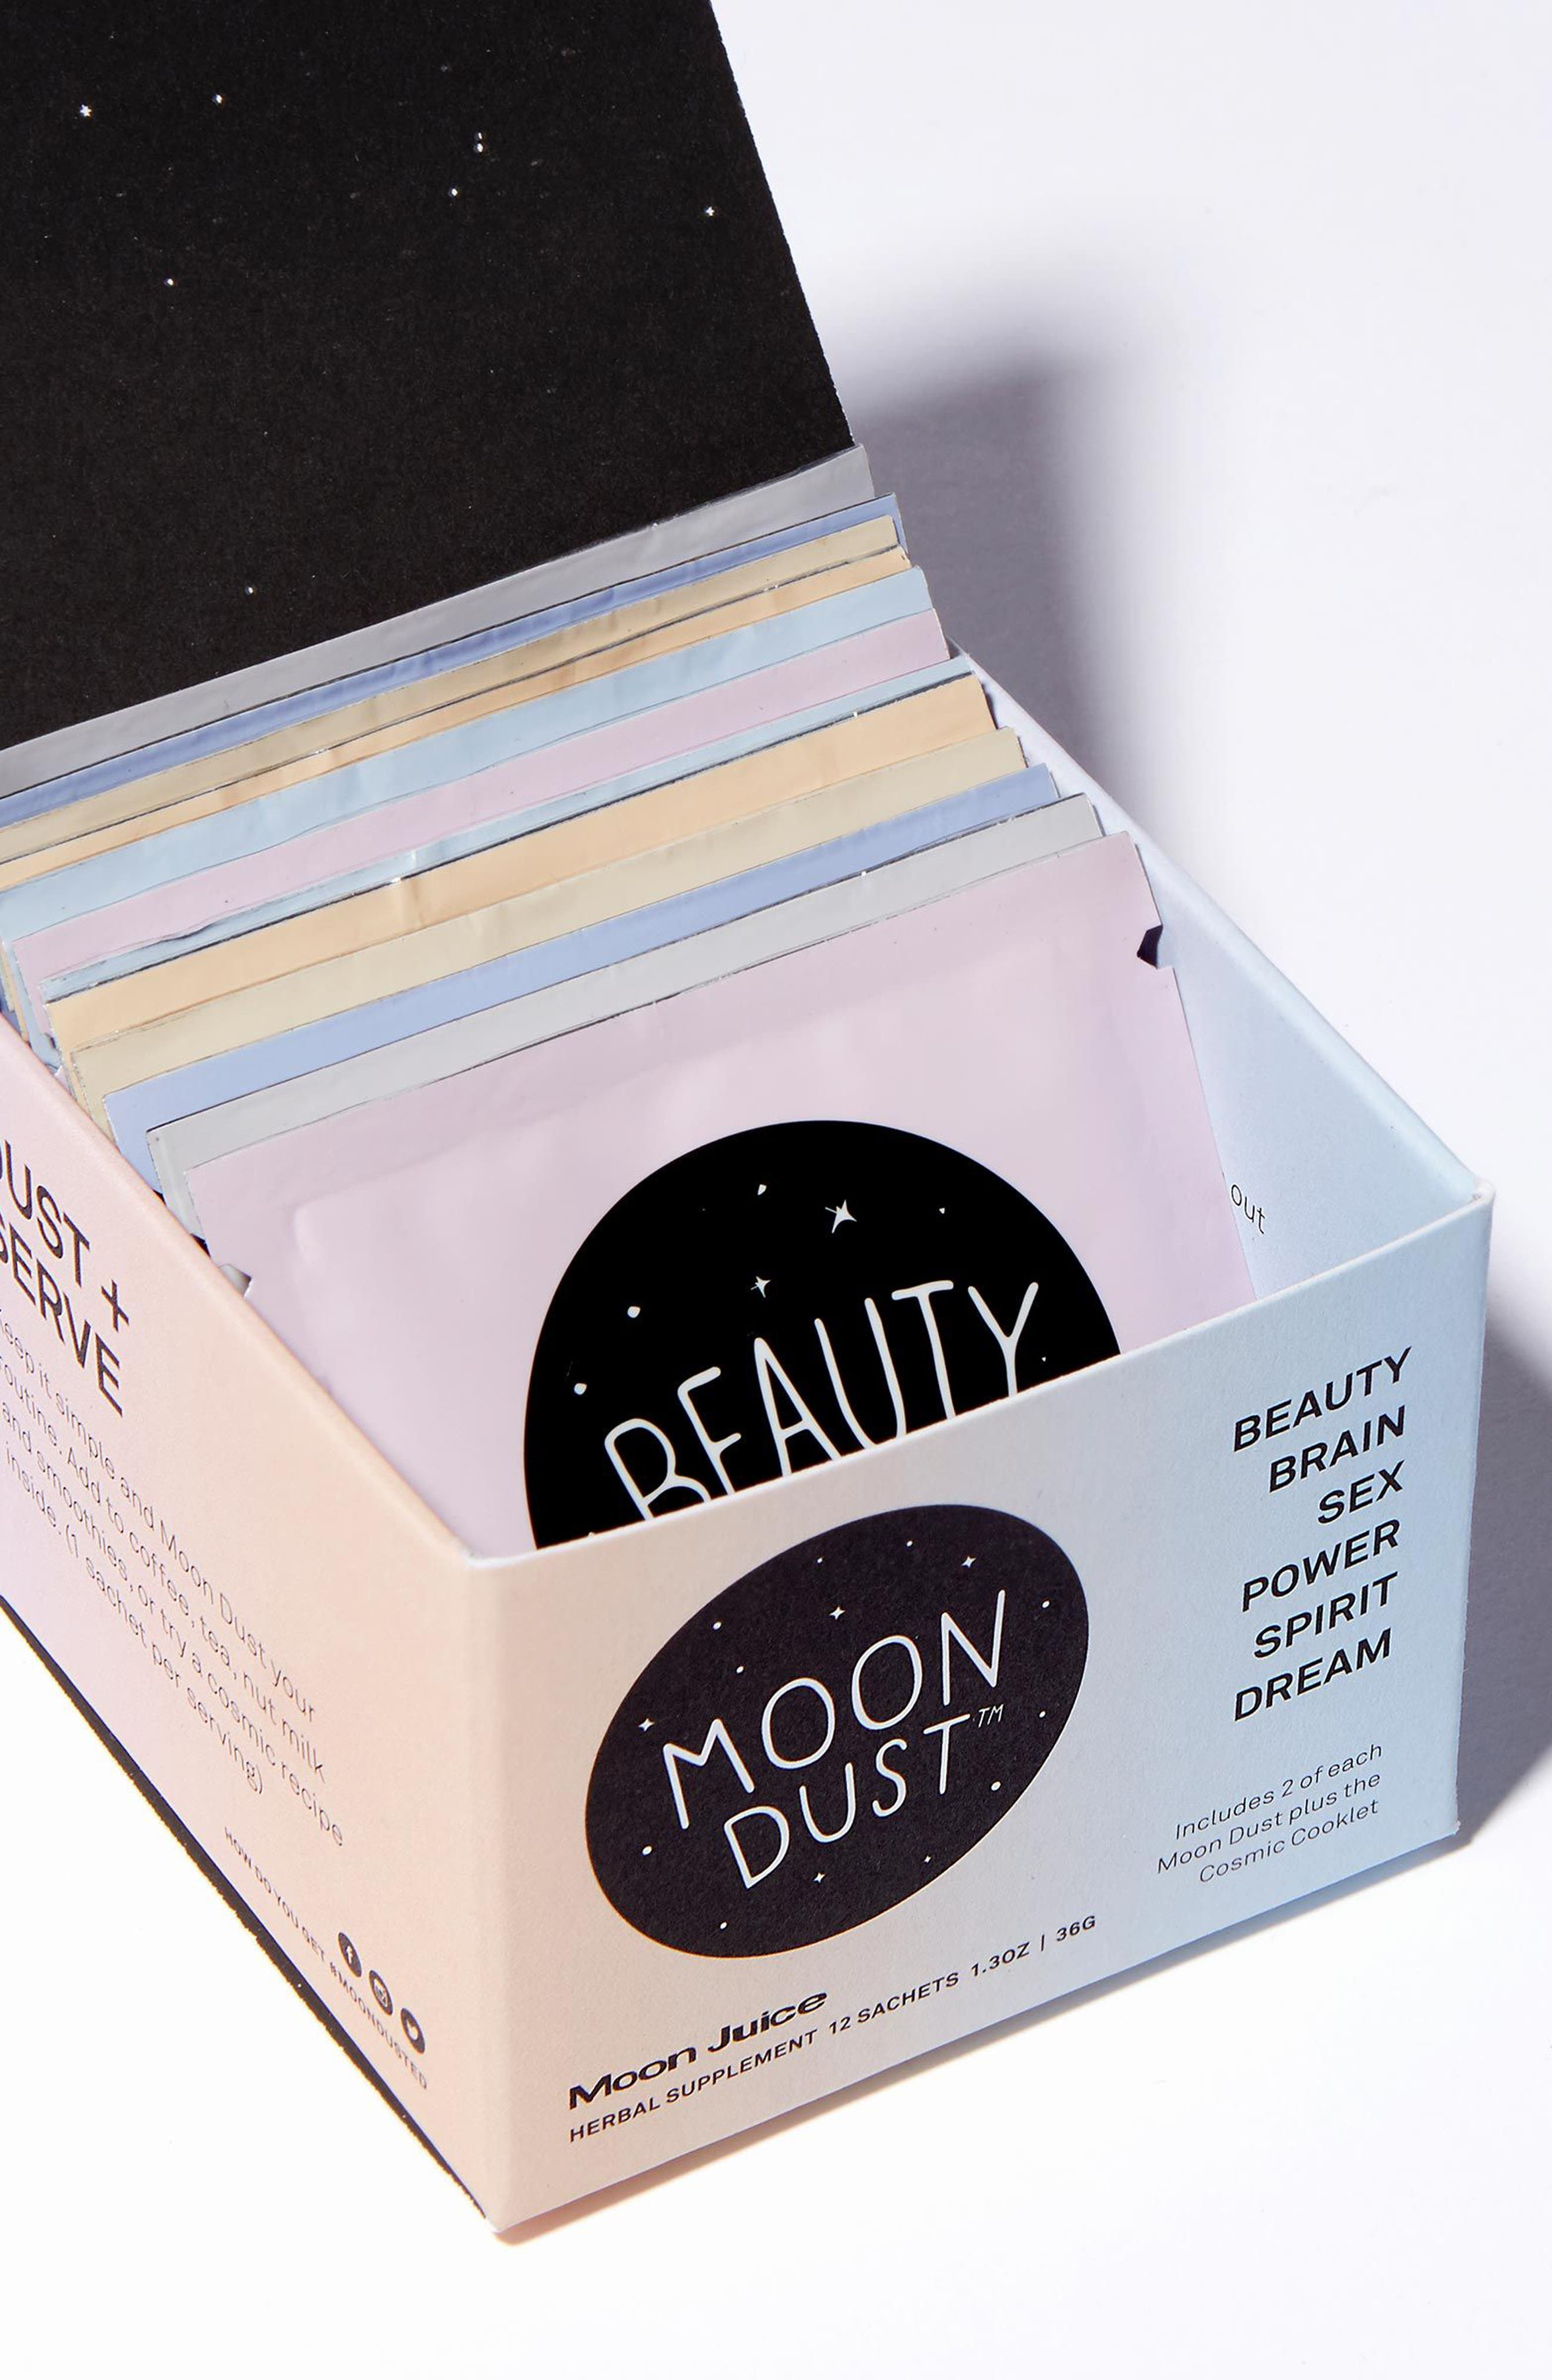 Full Moon Dust 12-Pack Sachet Box,                             Alternate thumbnail 4, color,                             NO COLOR